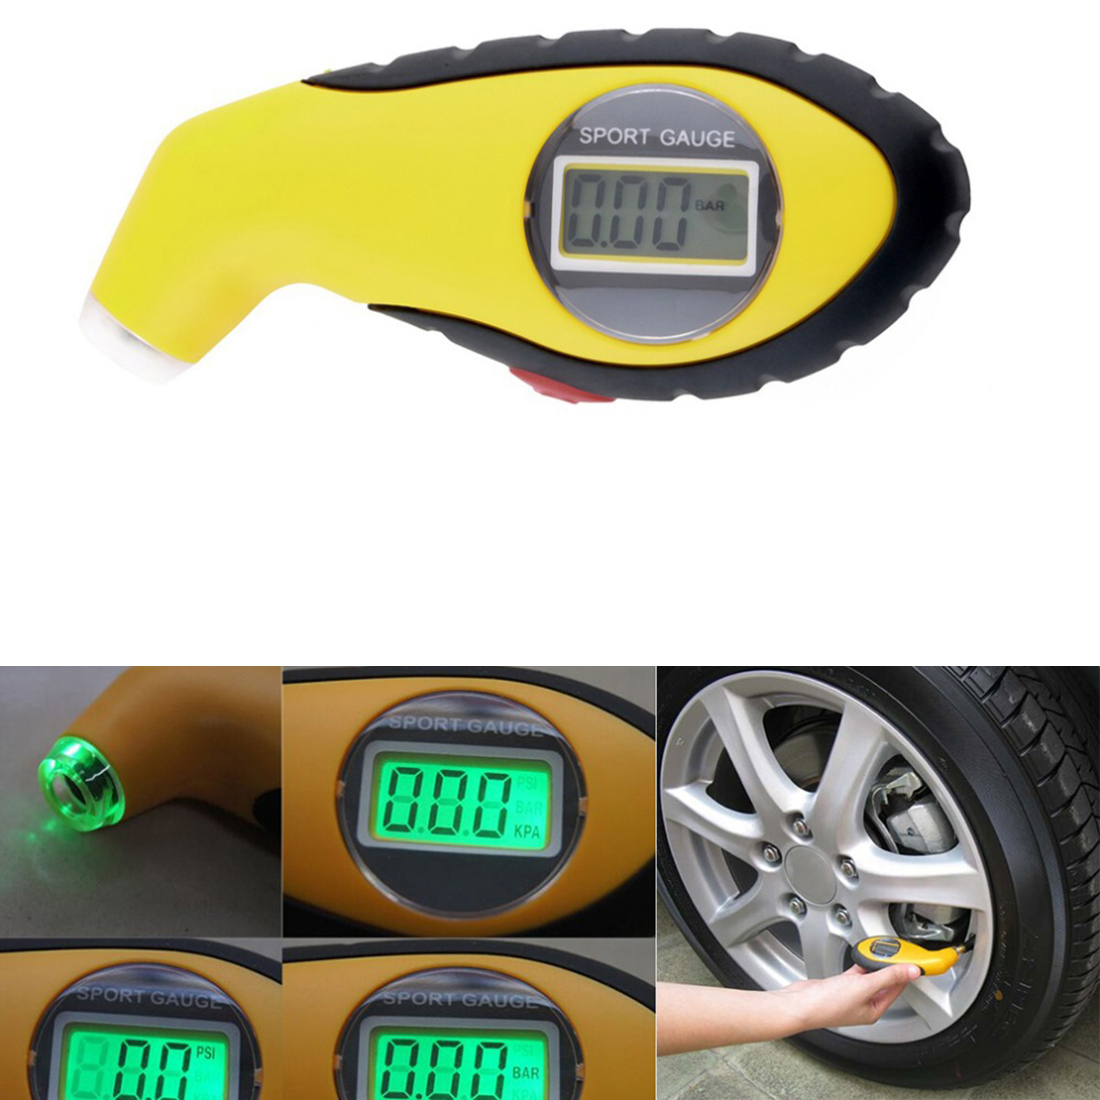 1pcs New PSI Digital Tire Tyre Air Pressure Gauge Tester Tool For Auto Car Motorcycle PSI  KPA BAR air pressure gauge 0 300 psi 0 16 bar with inflating gun fit for auto car motorcycle bicycle type measure meter 6007